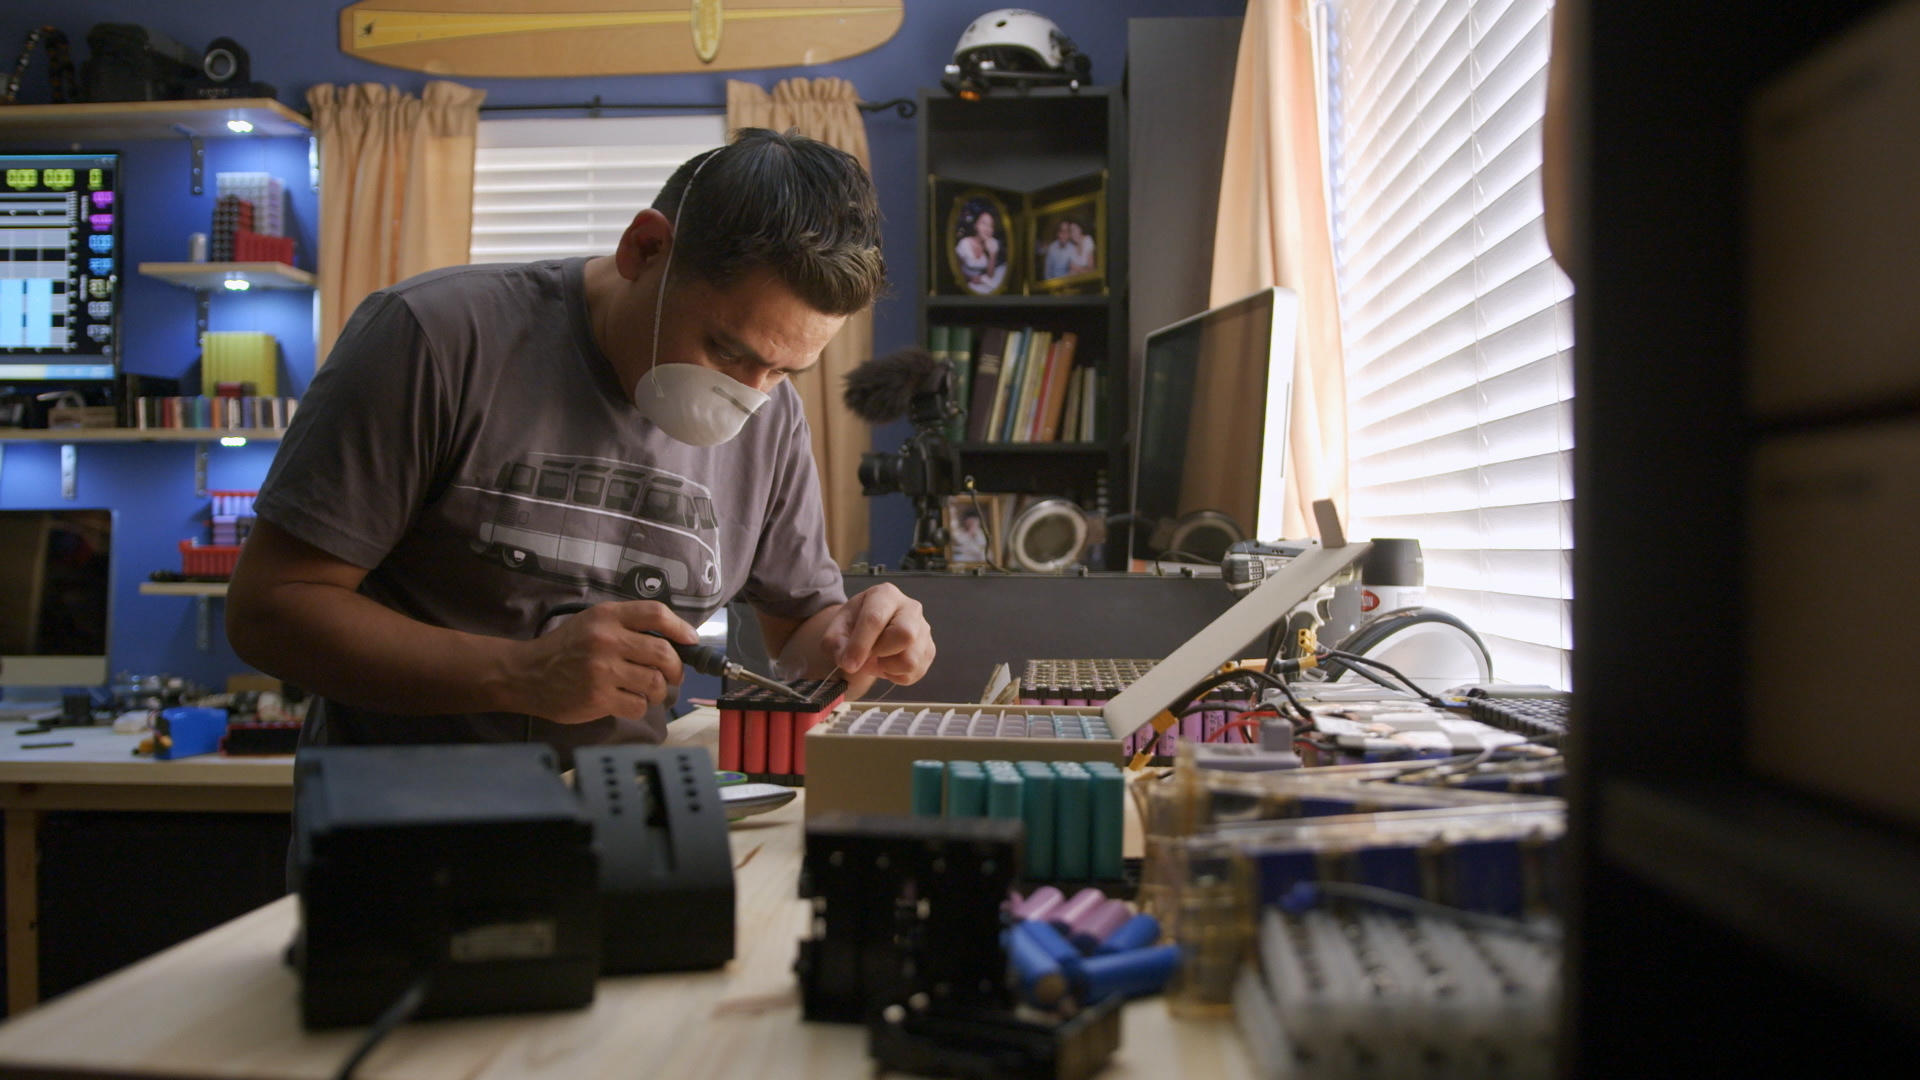 Video: Dear Future: Batteries will be a thing of the past